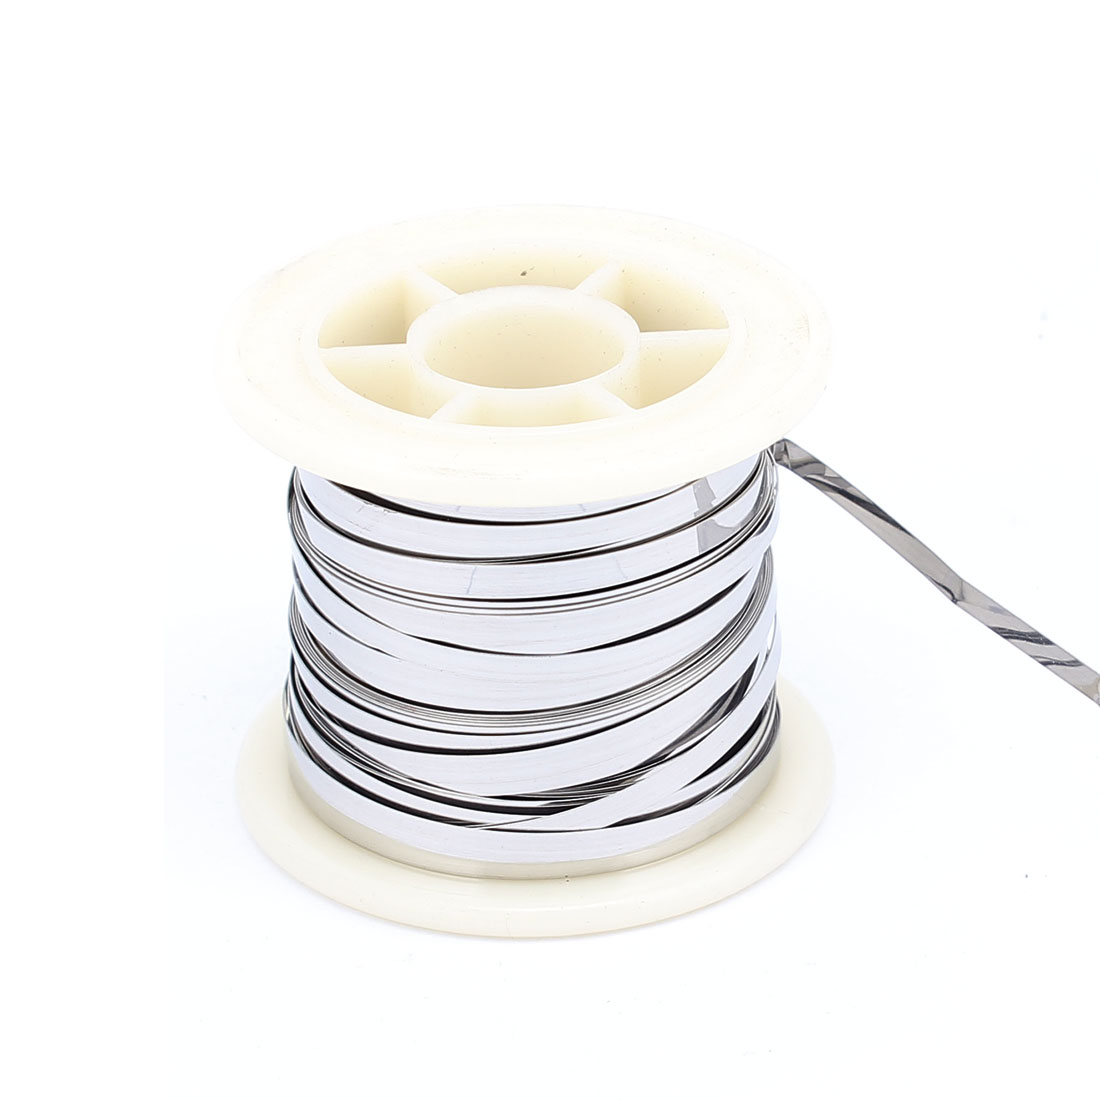 7.5M 24.6Ft 0.2x3mm Nichrome Flat Heater Wire for Heating Elements